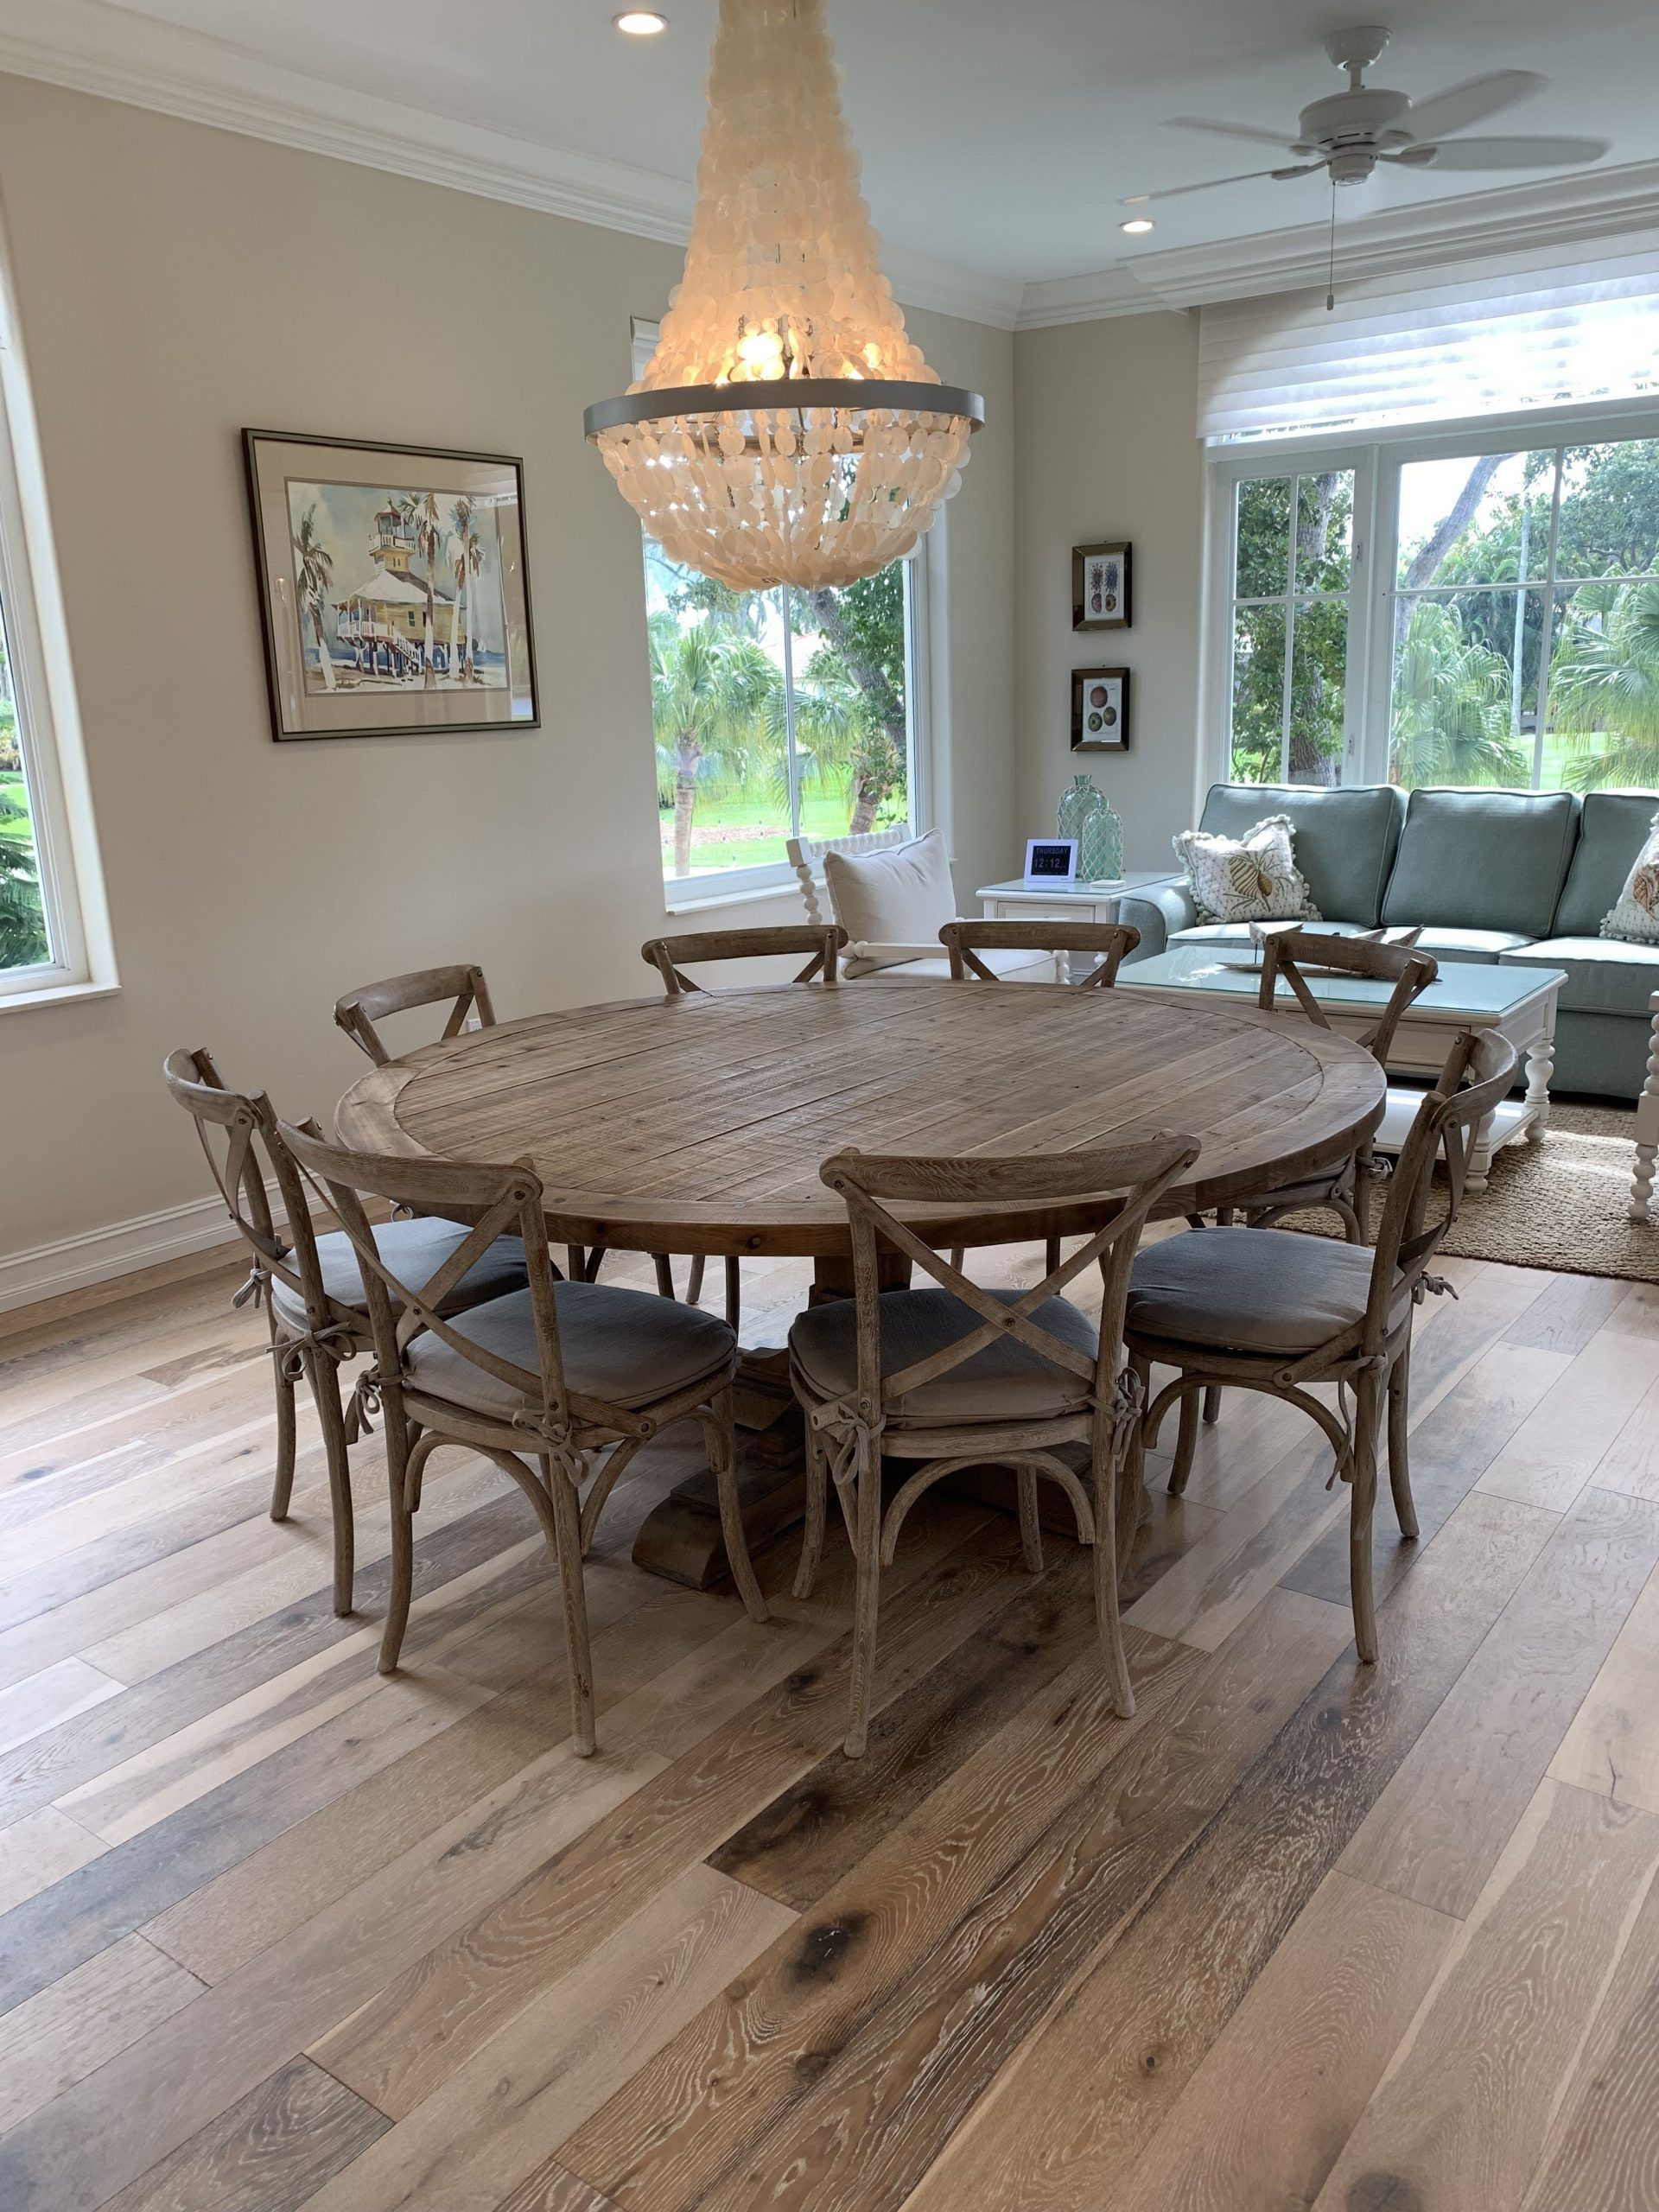 Round 8 Person Dining Table Perfect For My Square Space Round Dining Room Table Round Dining Room Sets Round Dining Room